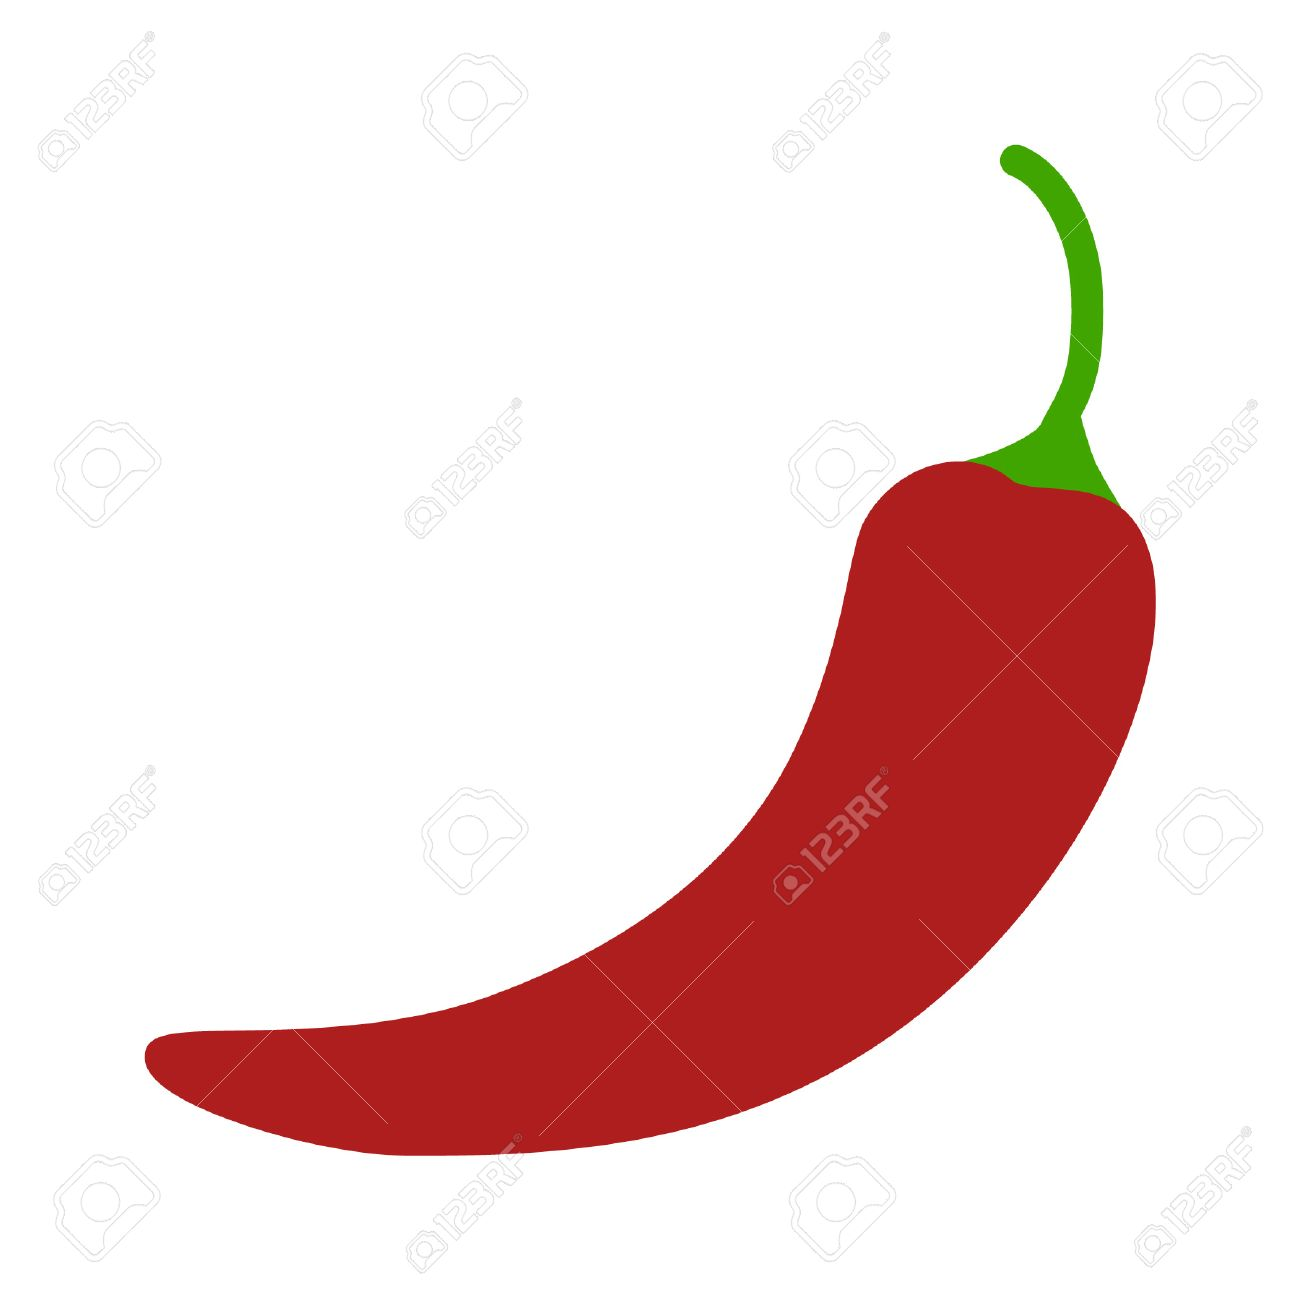 Hot chili pepper flat icon for apps and websites - 42419530